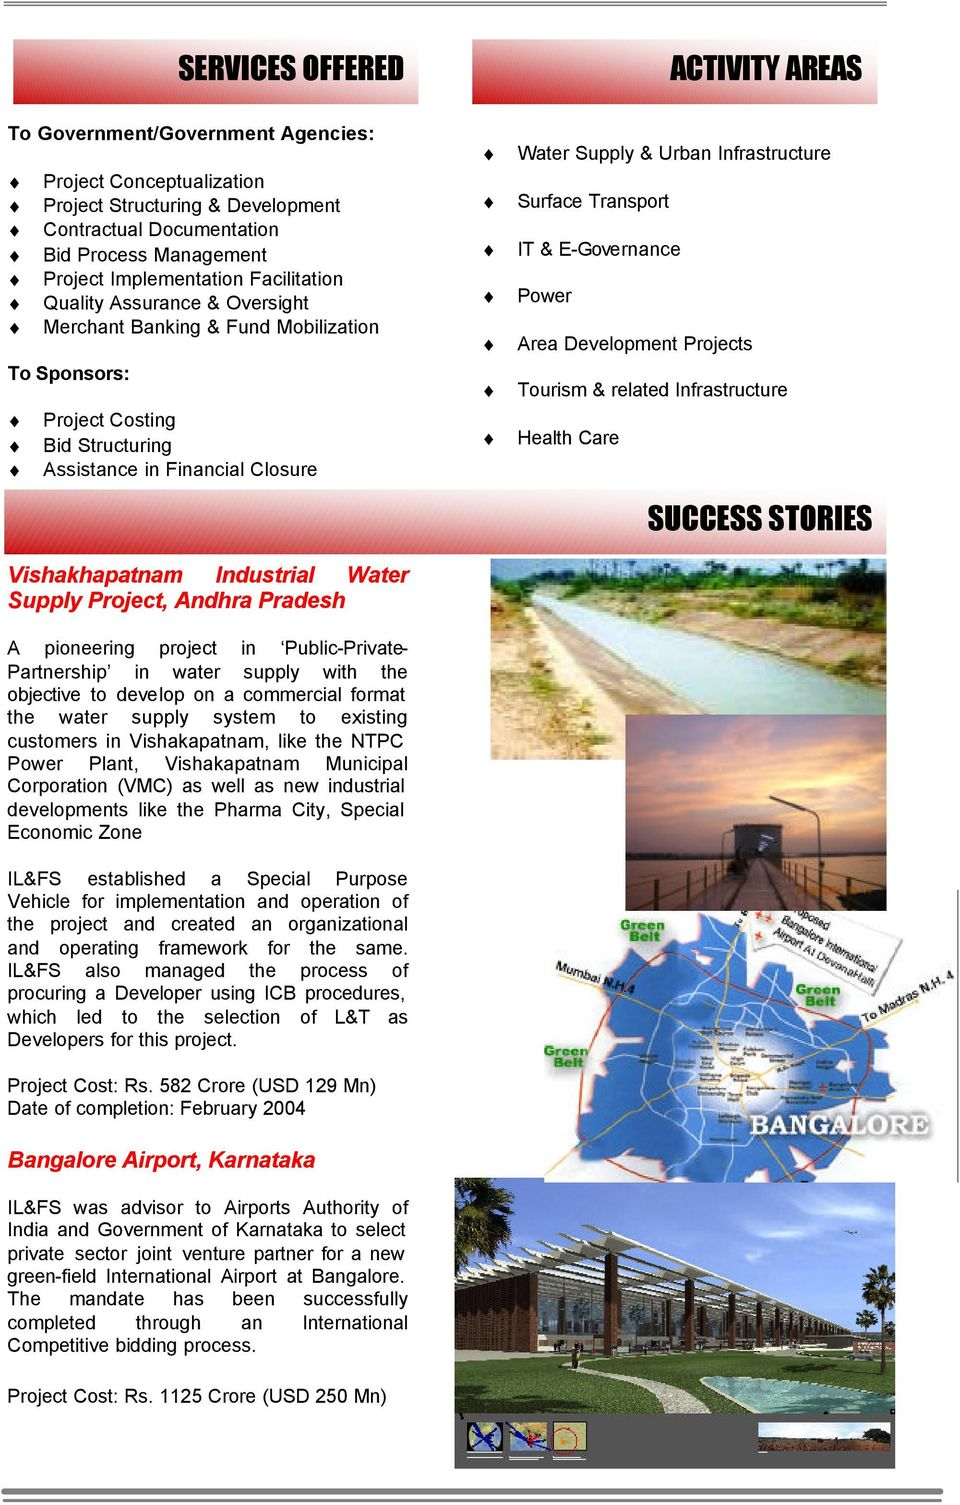 Project, Andhra Pradesh A pioneering project in Public-Private- Partnership in water supply with the objective to develop on a commercial format the water supply system to existing customers in